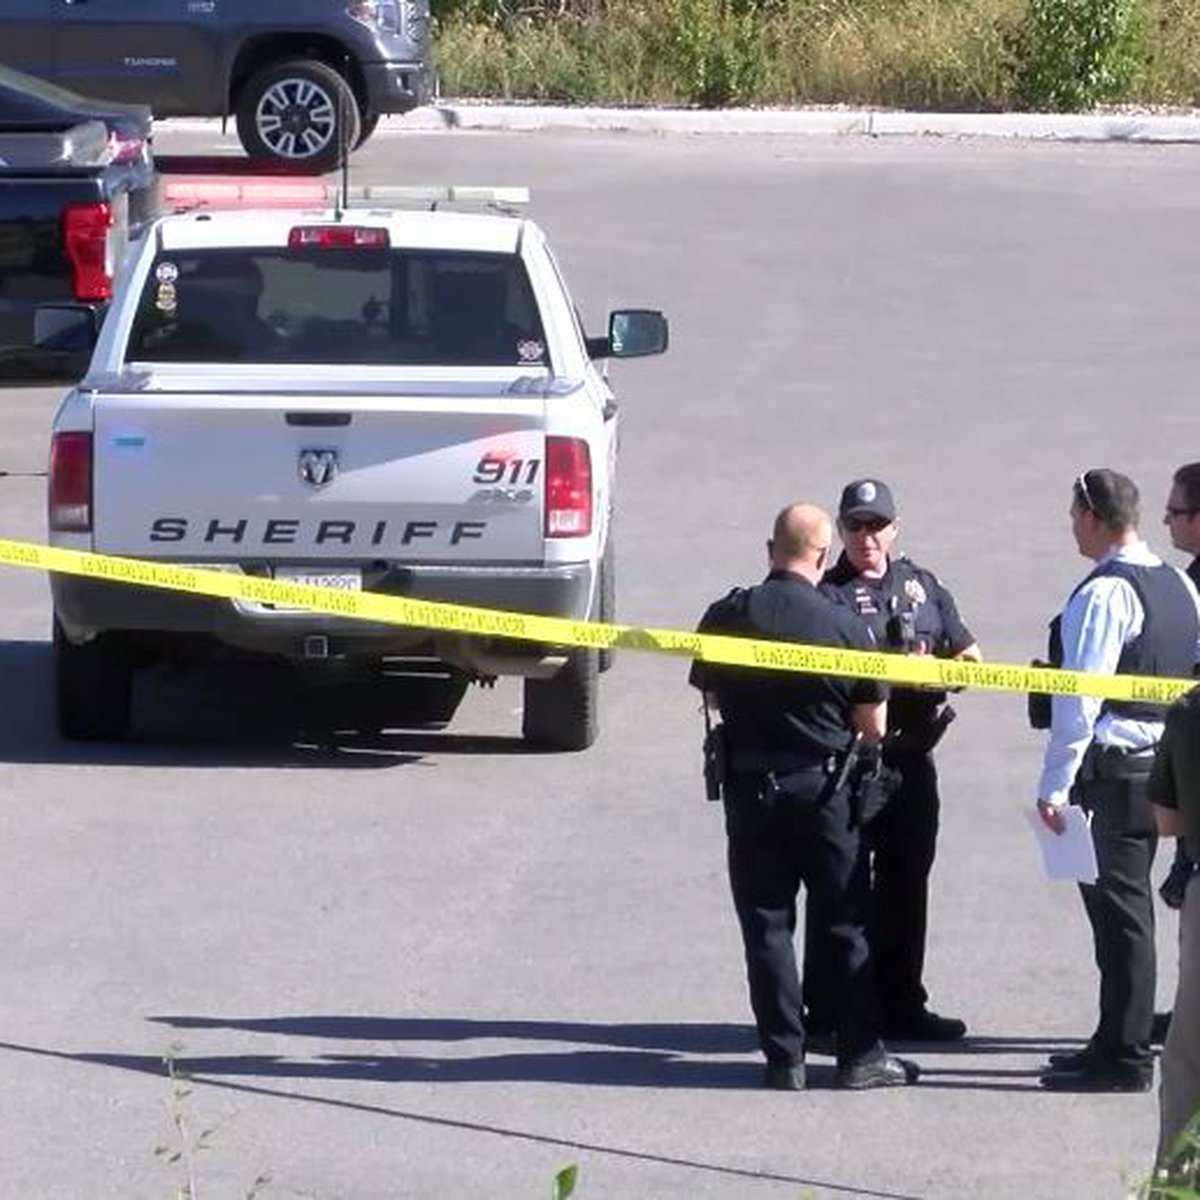 Homeless Man Kills Gym Manager After Being Evicted From Parking Lot Shelter